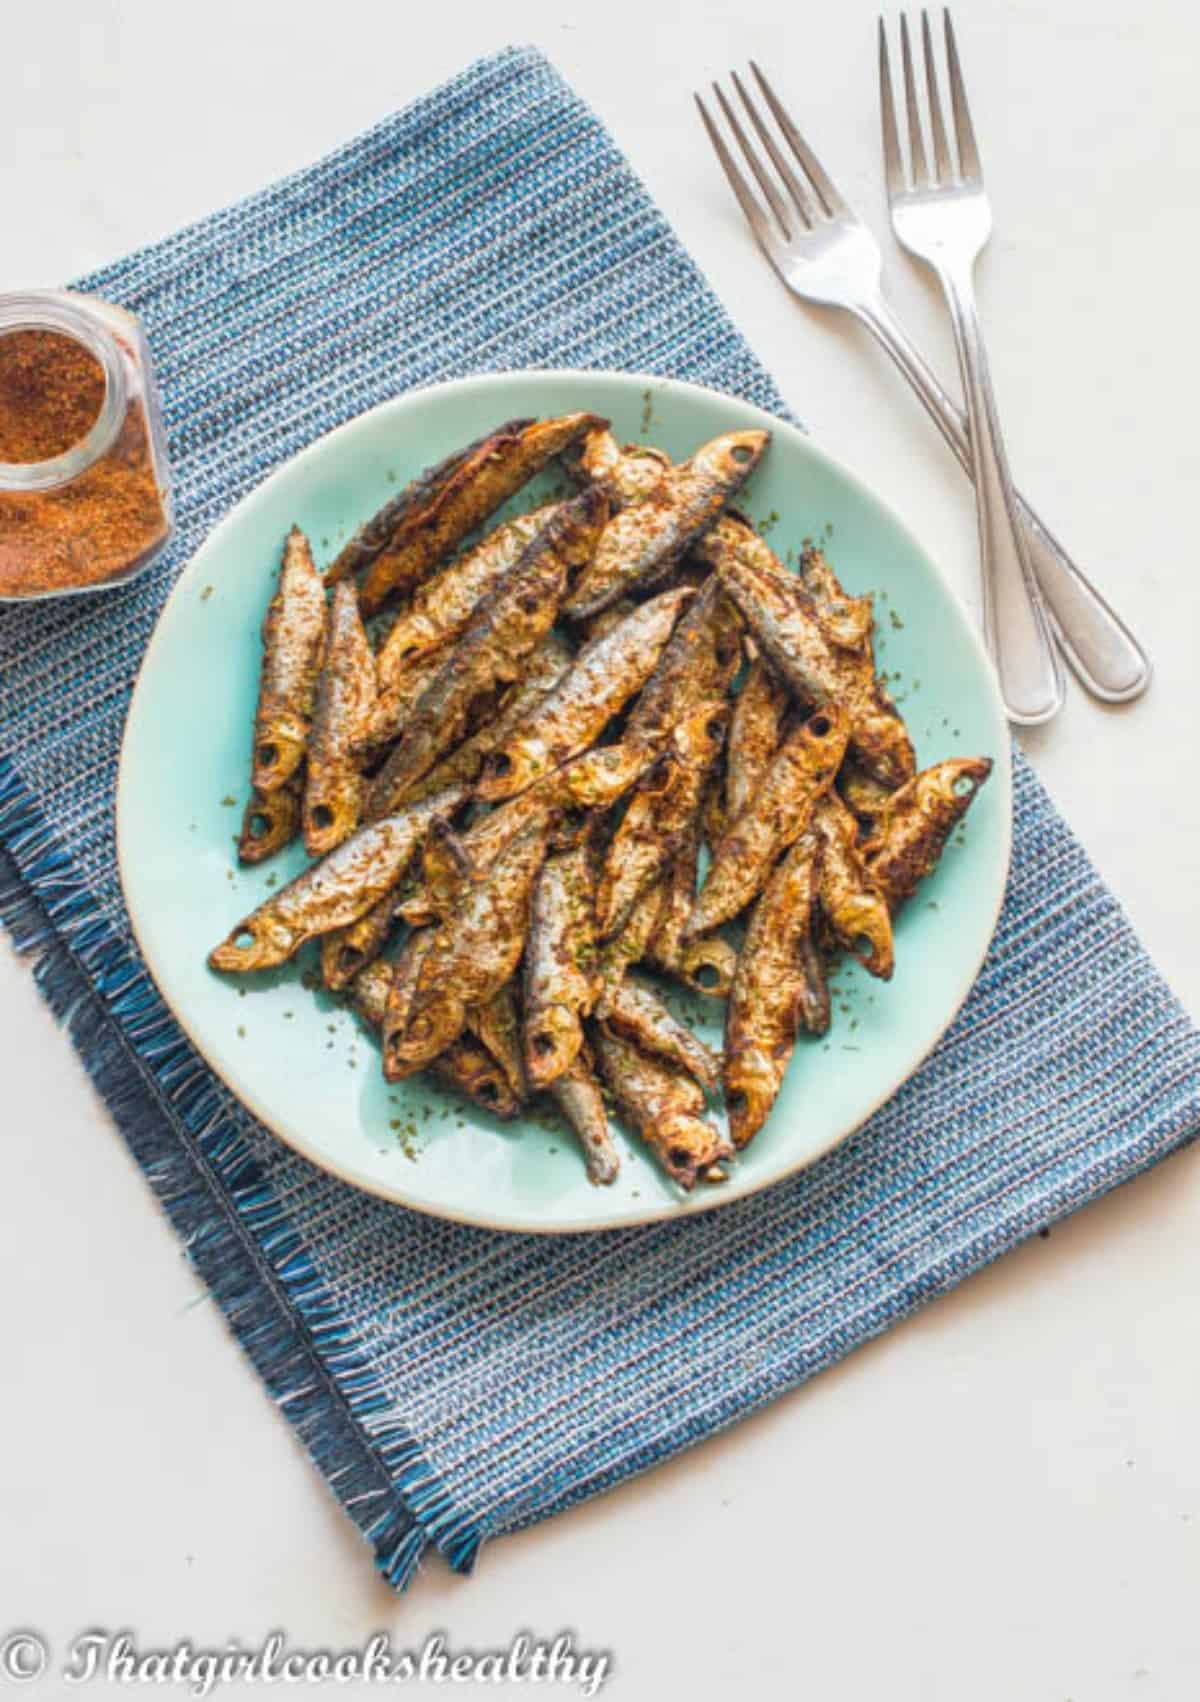 Sprats on a blue plate